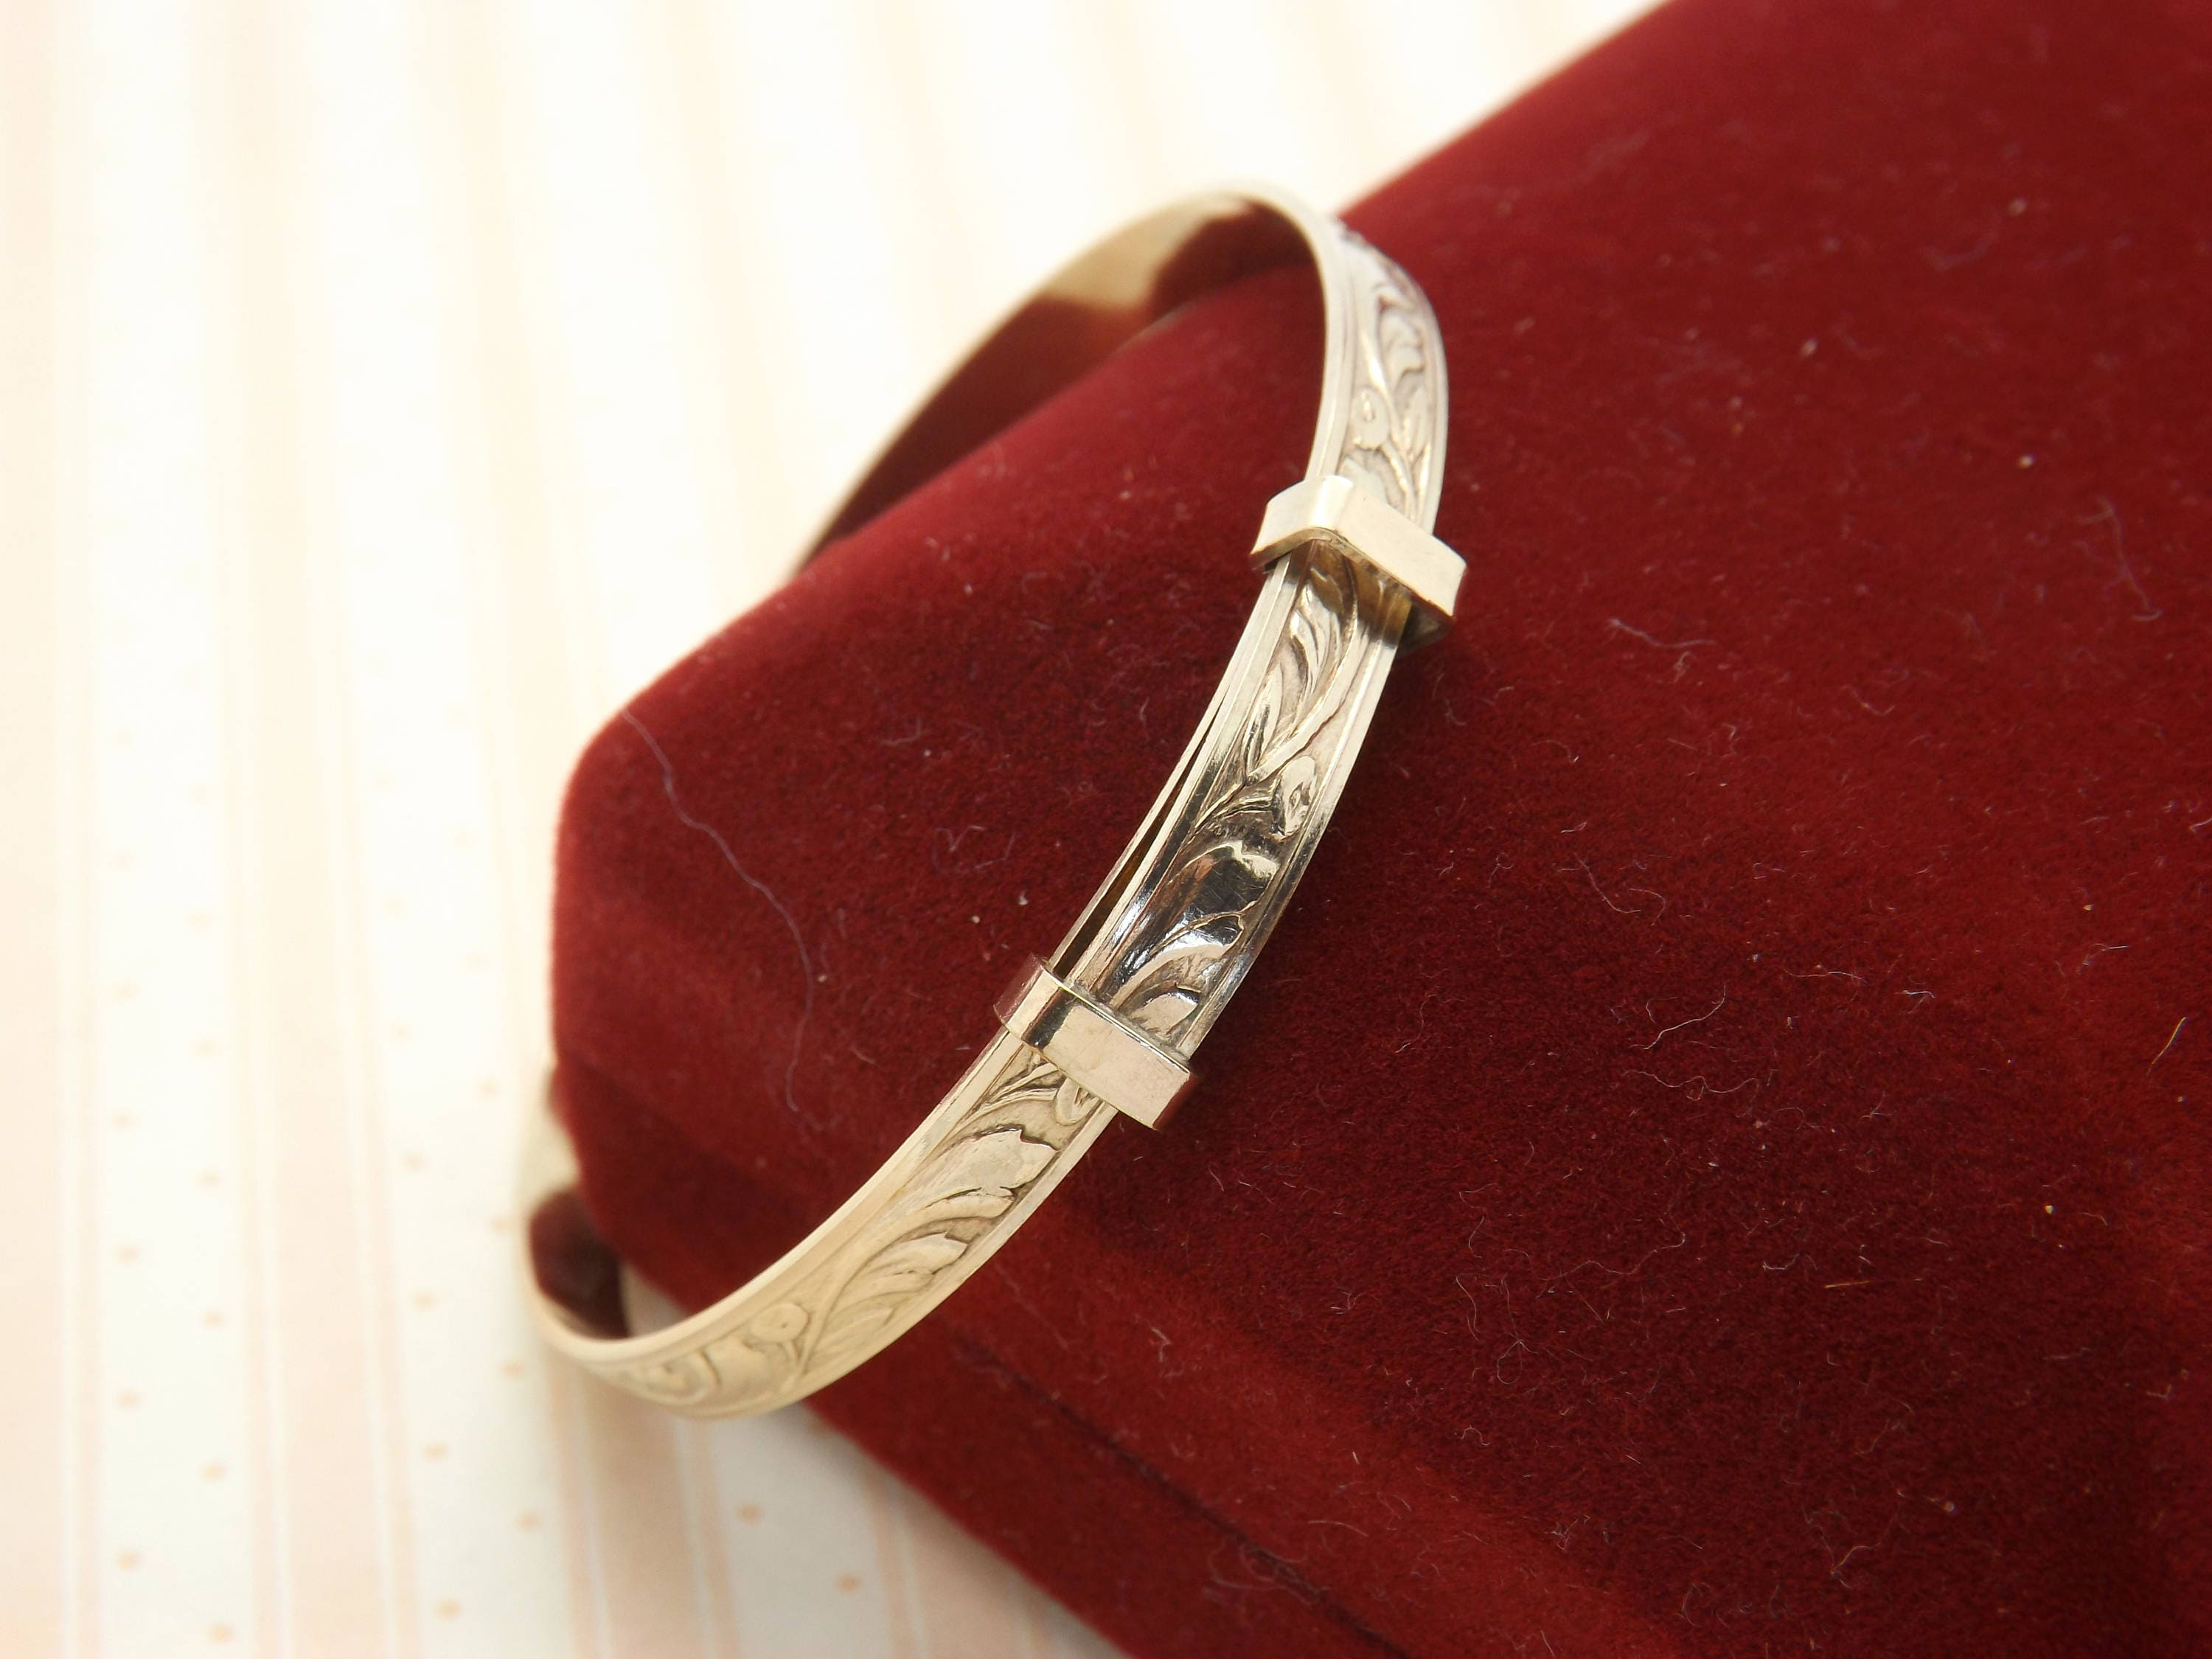 A fine rolled gold childsyoung persons expanding vintage jewelry rolled gold banglebracelet in an engraved floral design.